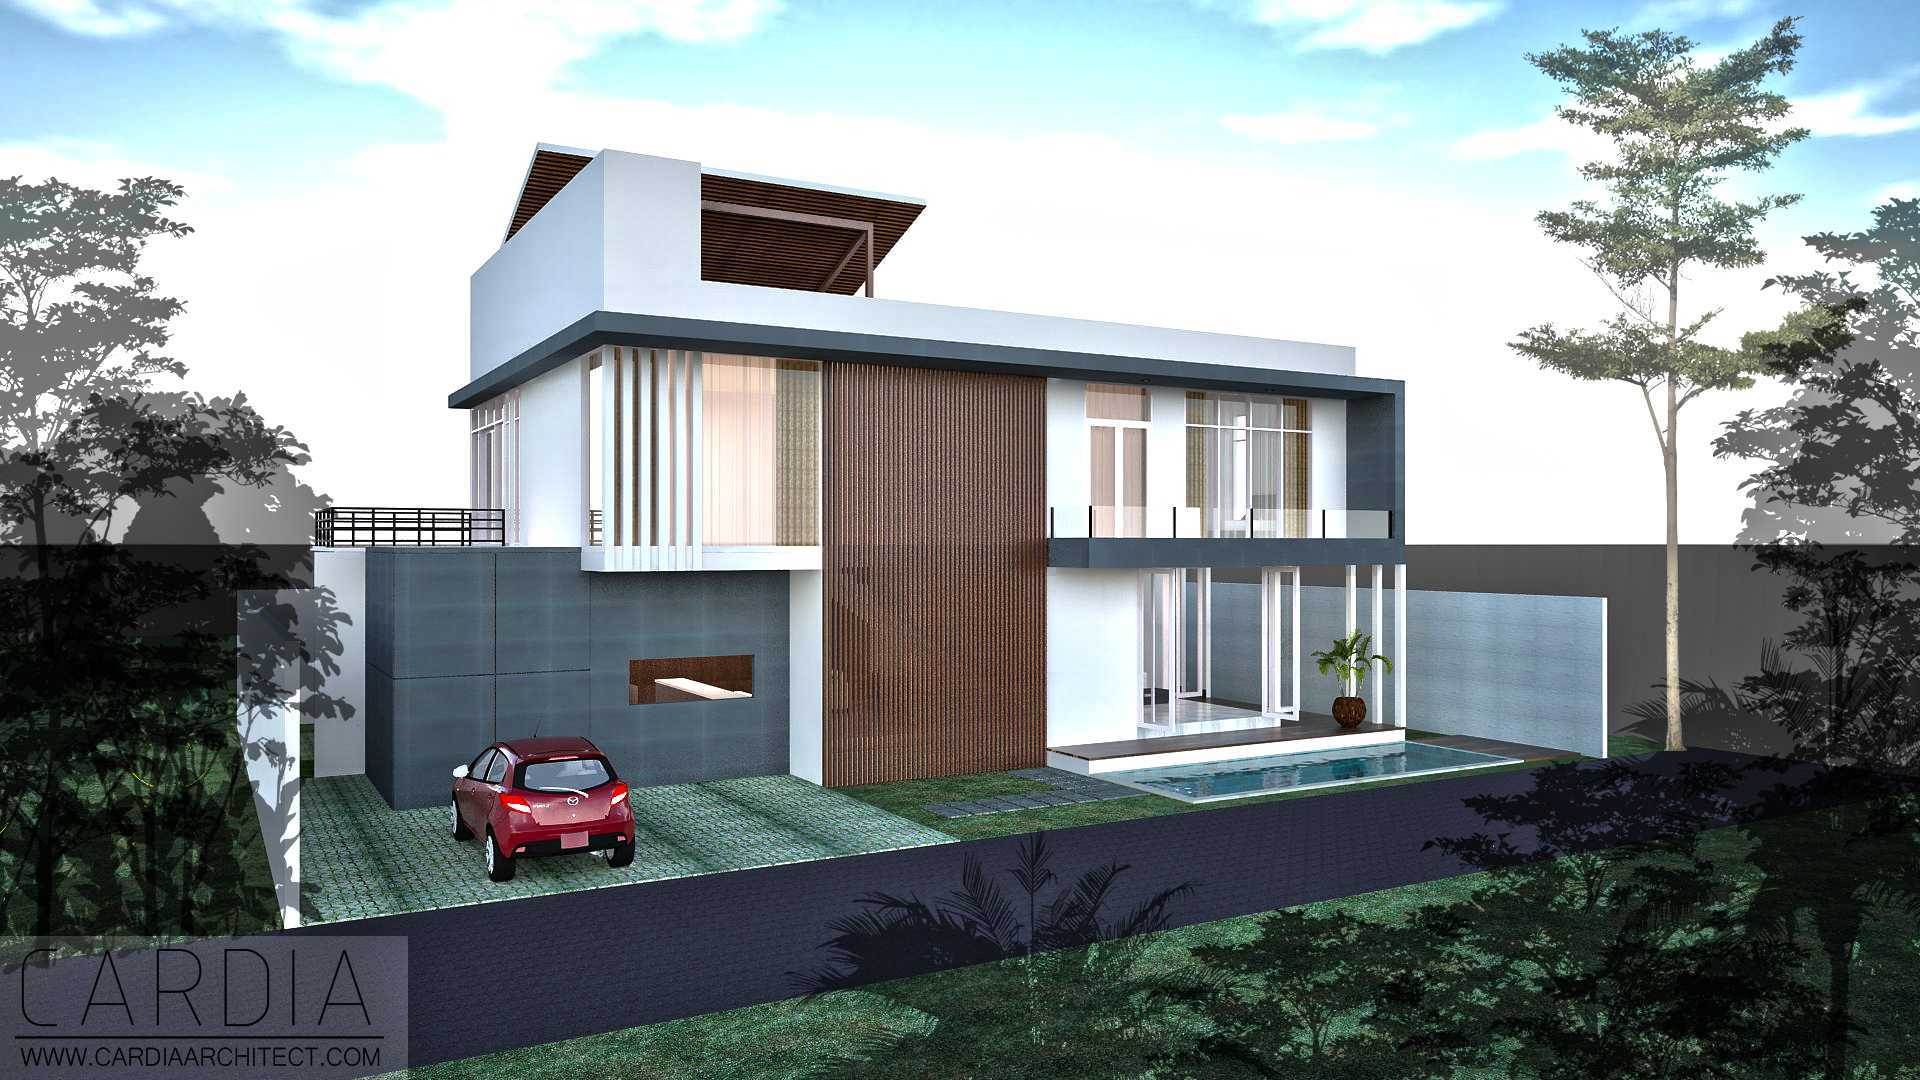 Cardia Architect Mr House Maumere, Kota Uneng, Alok, Kabupaten Sikka, Nusa Tenggara Tim., Indonesia Maumere Front View Minimalis,modern <P>View From Street With Pool</p> 21577